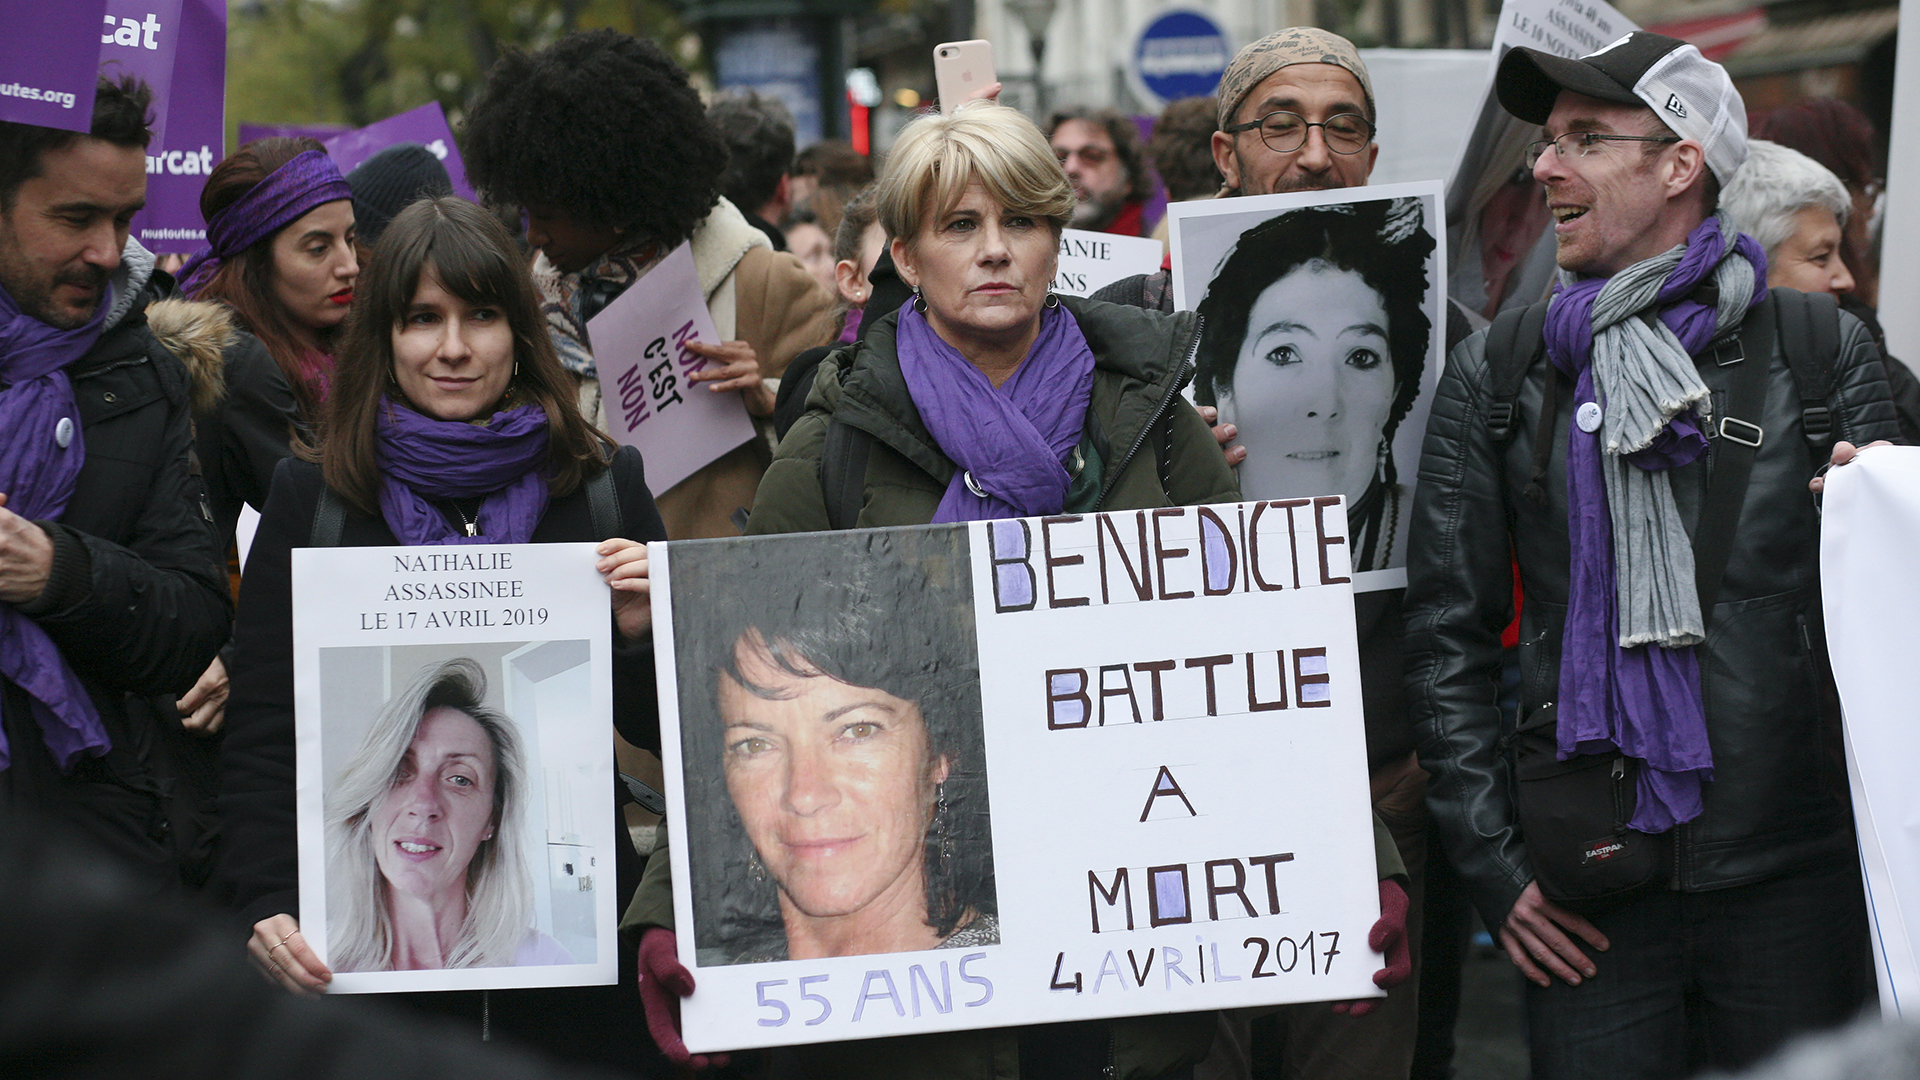 ONLY FOR FEATURE: Why has it been such a deadly year for French women? by Megan Clement [DON'T USE]